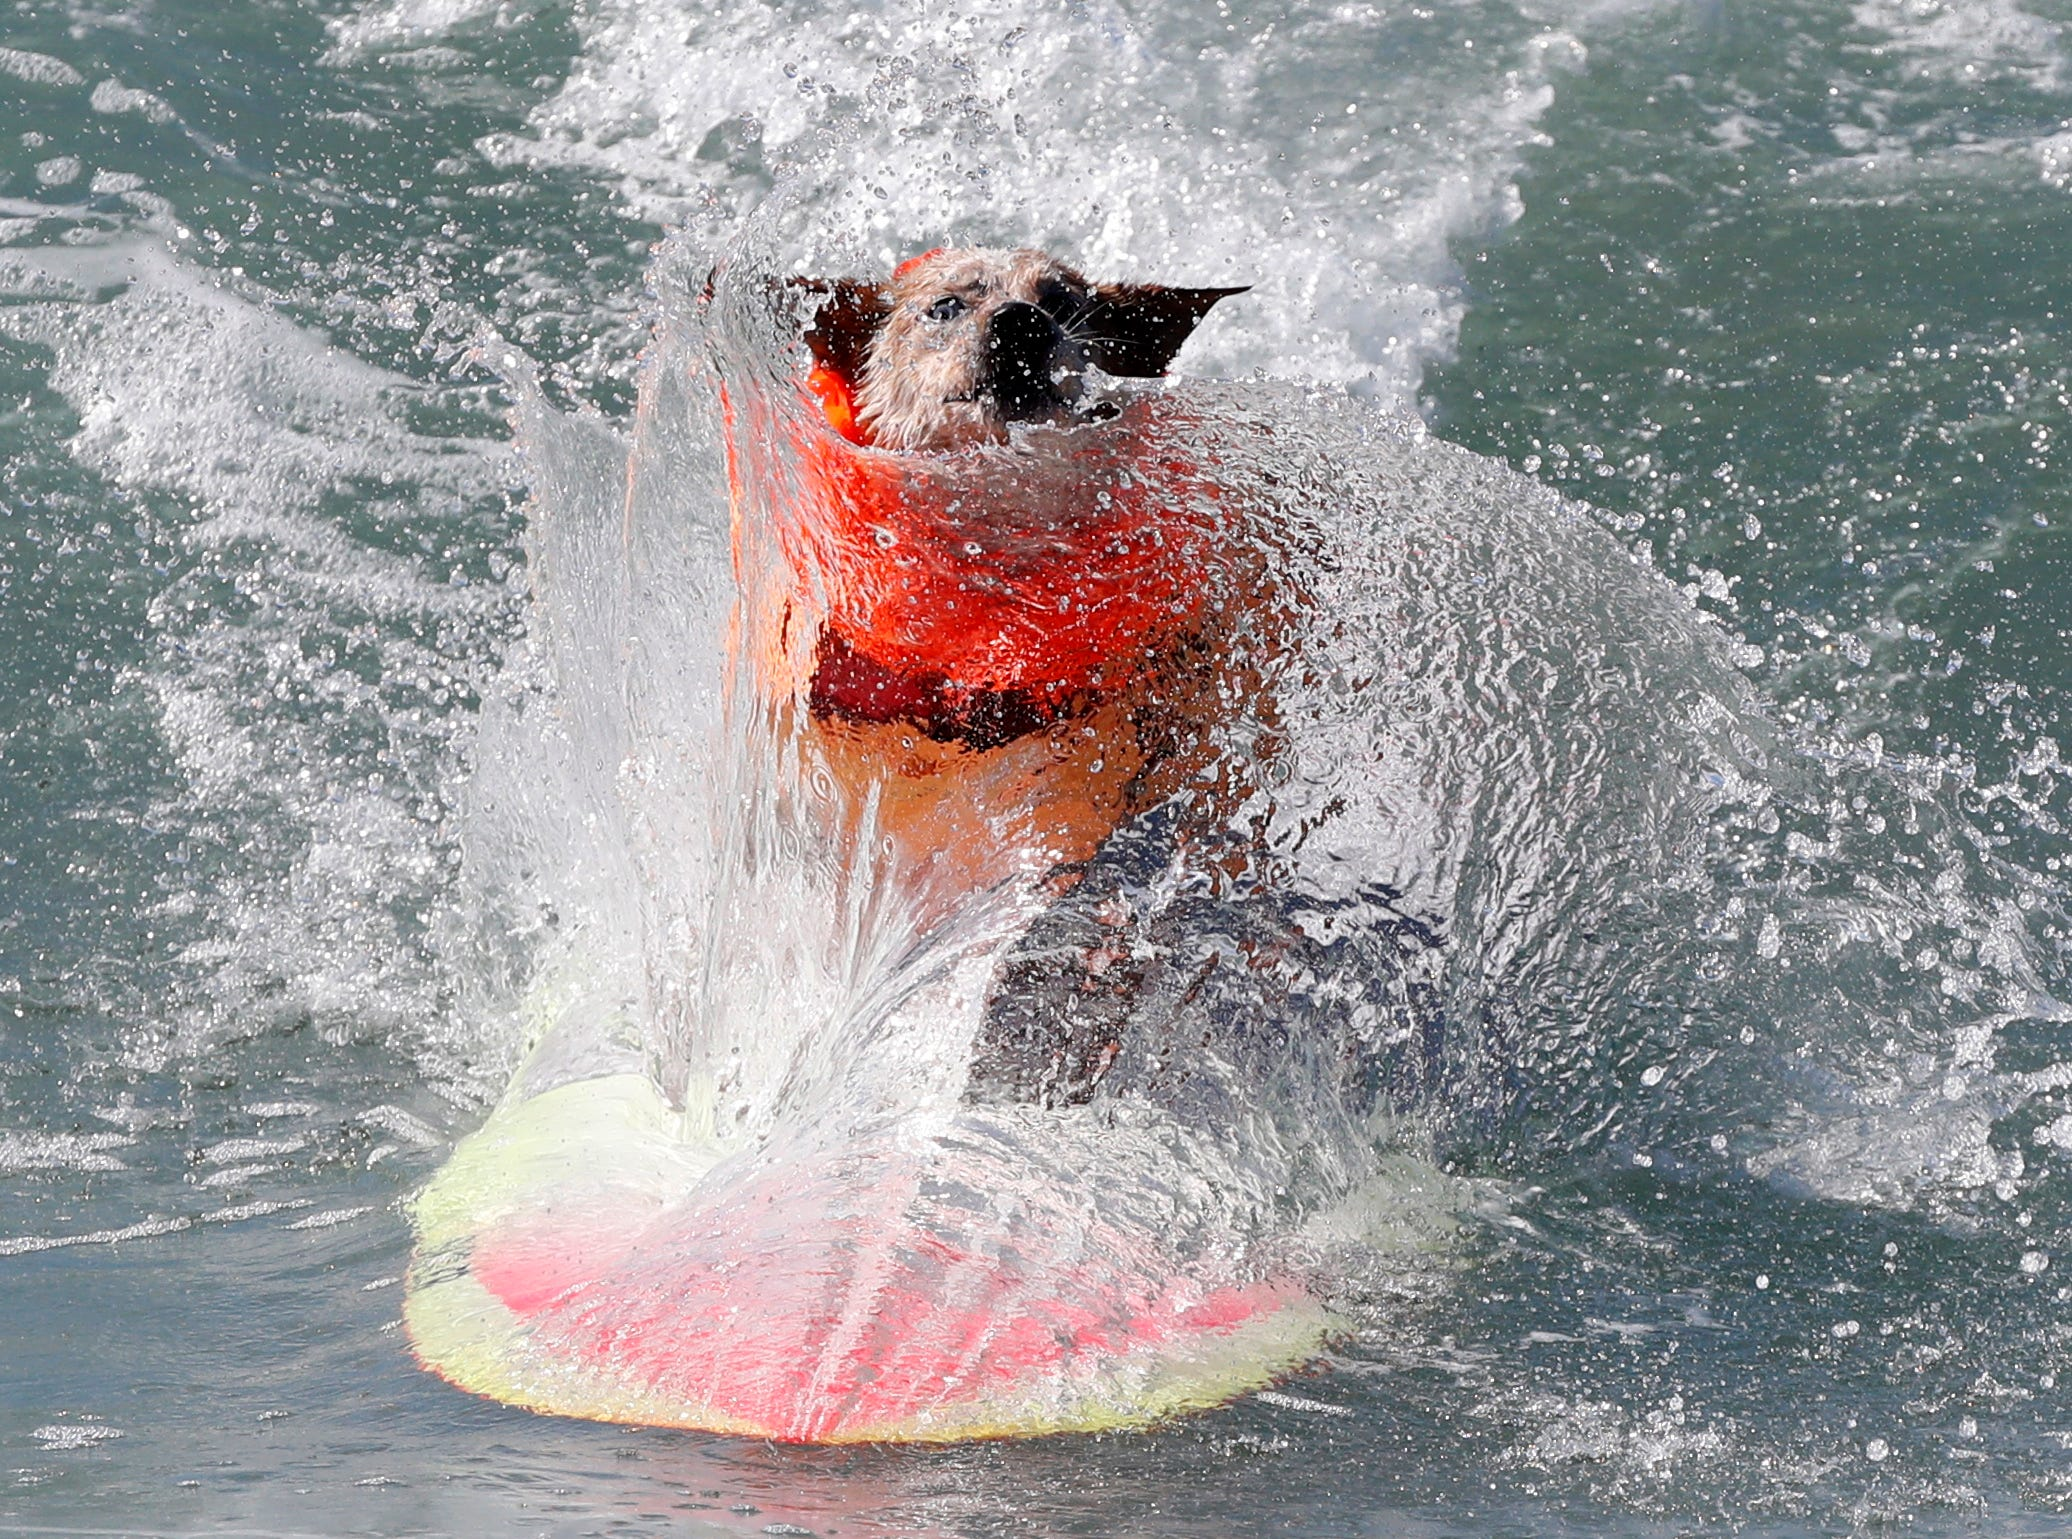 Skyler is splashed as he competes in the medium dog category.